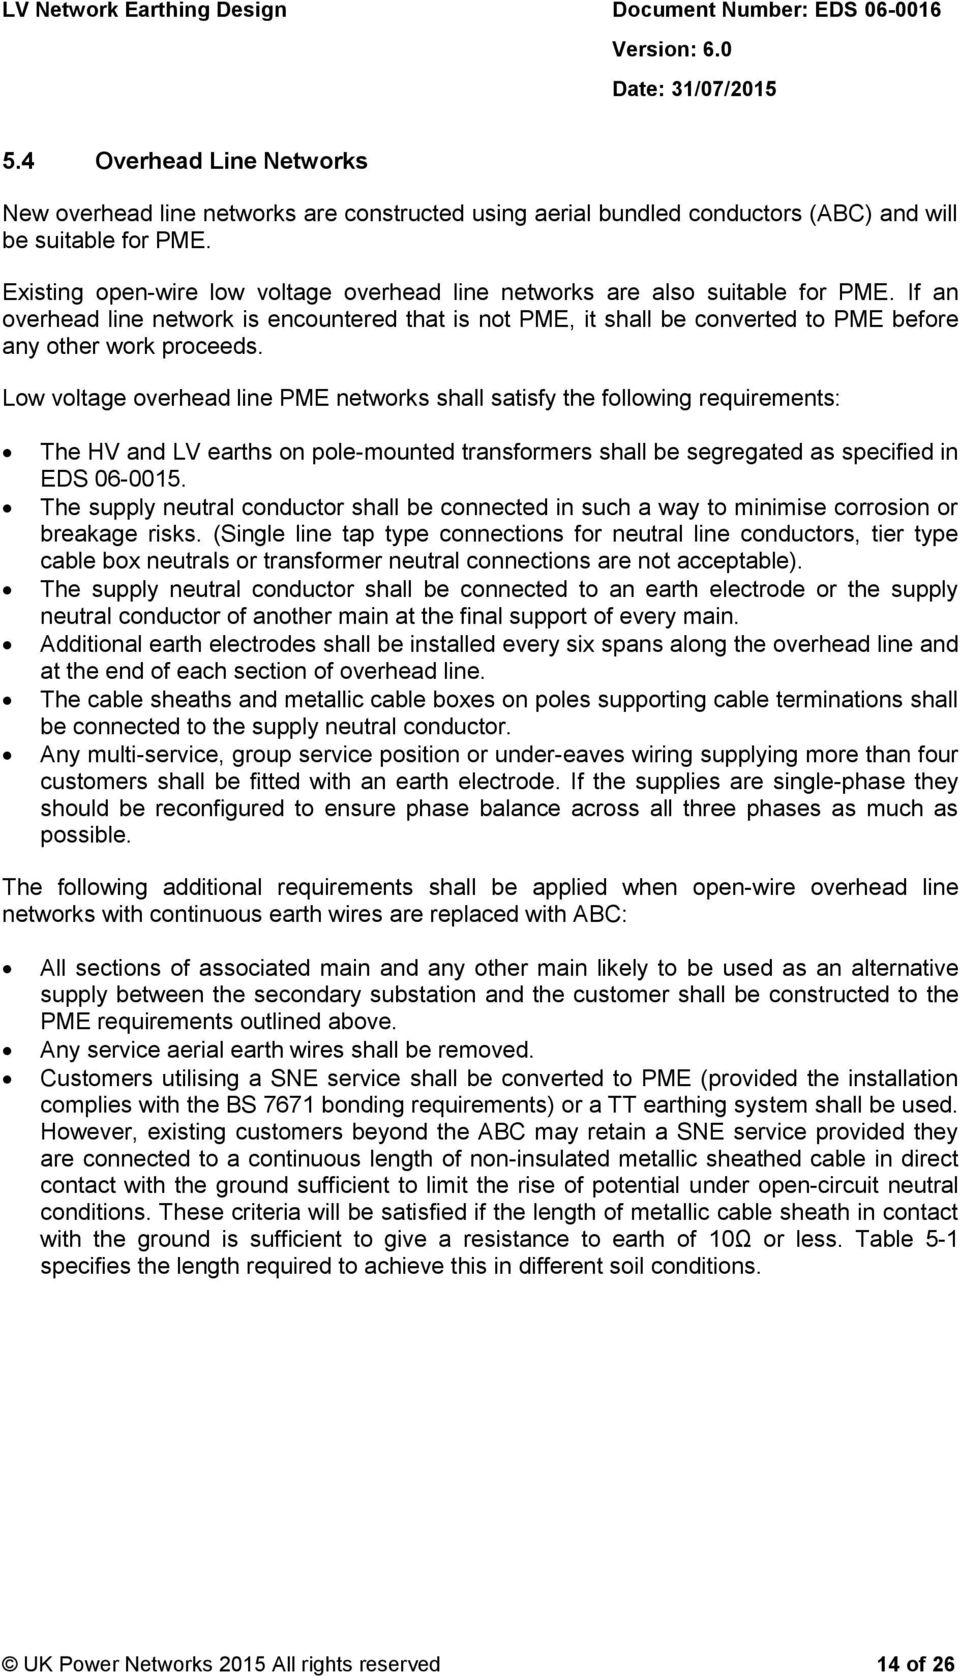 Eds Lv Network Earthing Design Pdf Pole Mount Transformer Wiring Diagram If An Overhead Line Is Encountered That Not Pme It Shall Be Converted